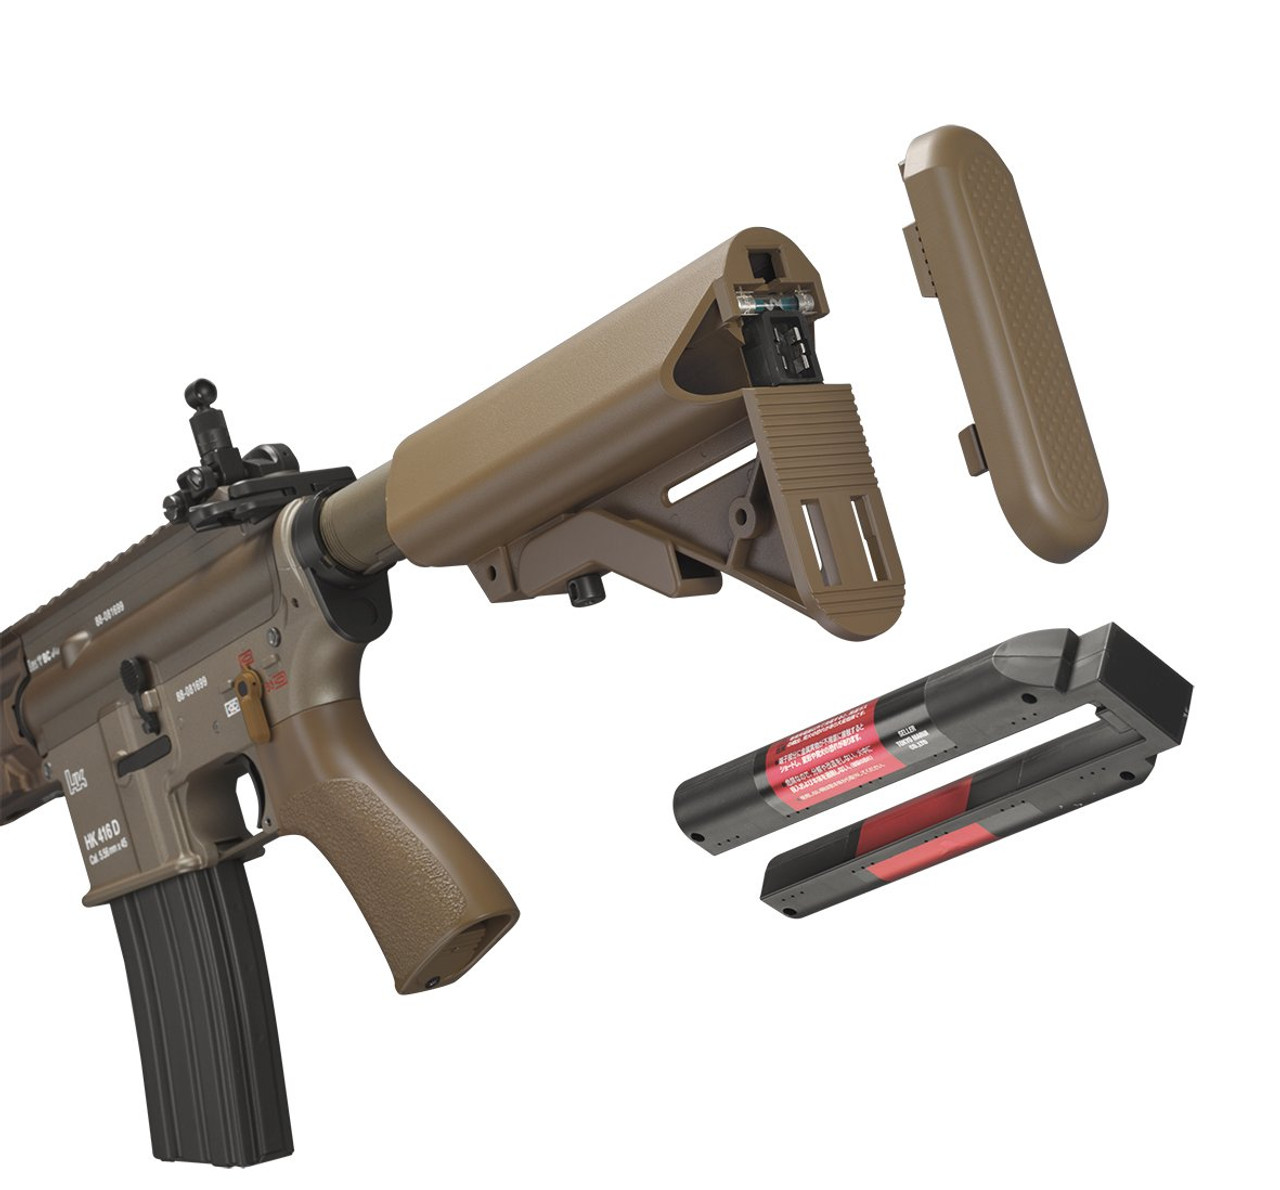 Tokyo Marui HK416 Delta Custom next generation Tan color Airsoft Electric  Machine gun